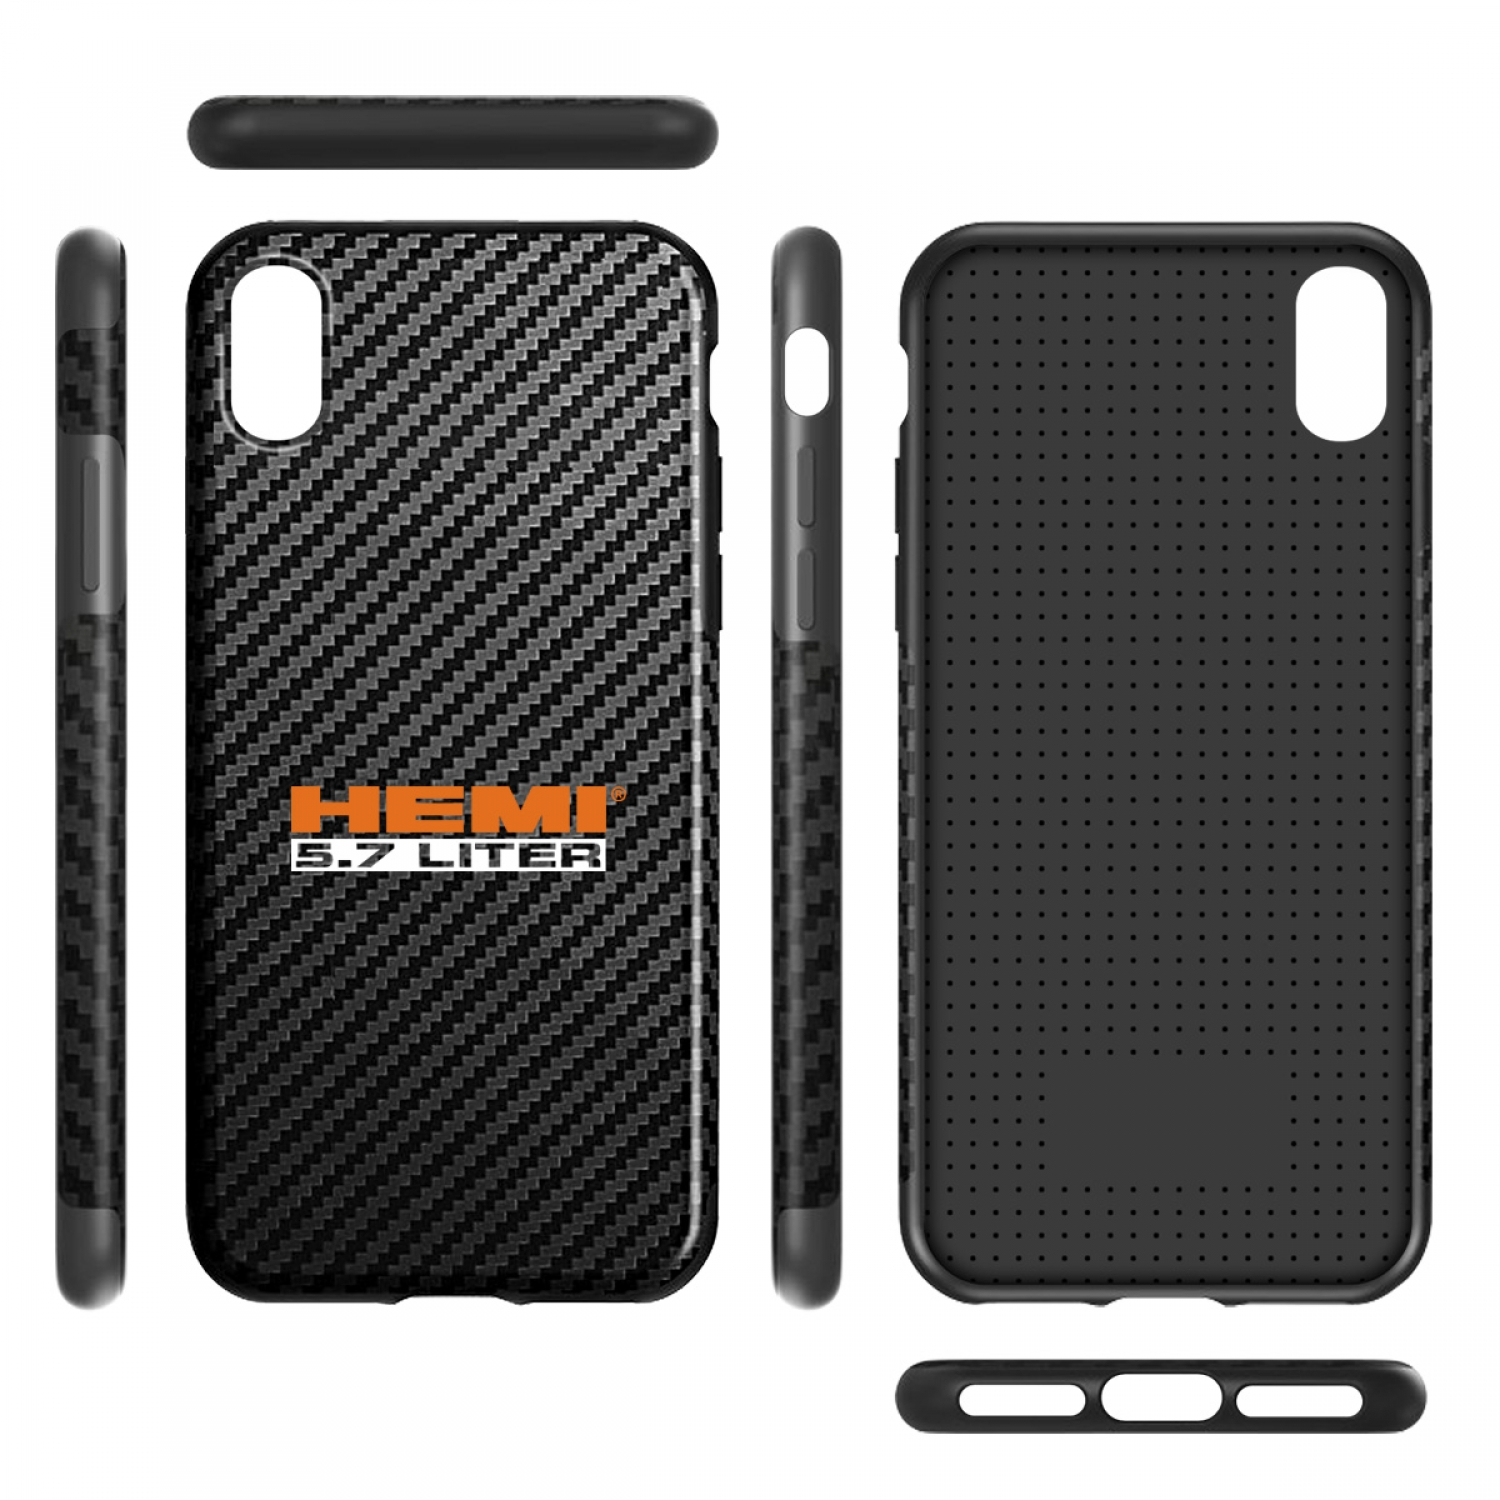 HEMI 5.7 Liter iPhone X Black Carbon Fiber Texture Leather TPU Shockproof Cell Phone Case